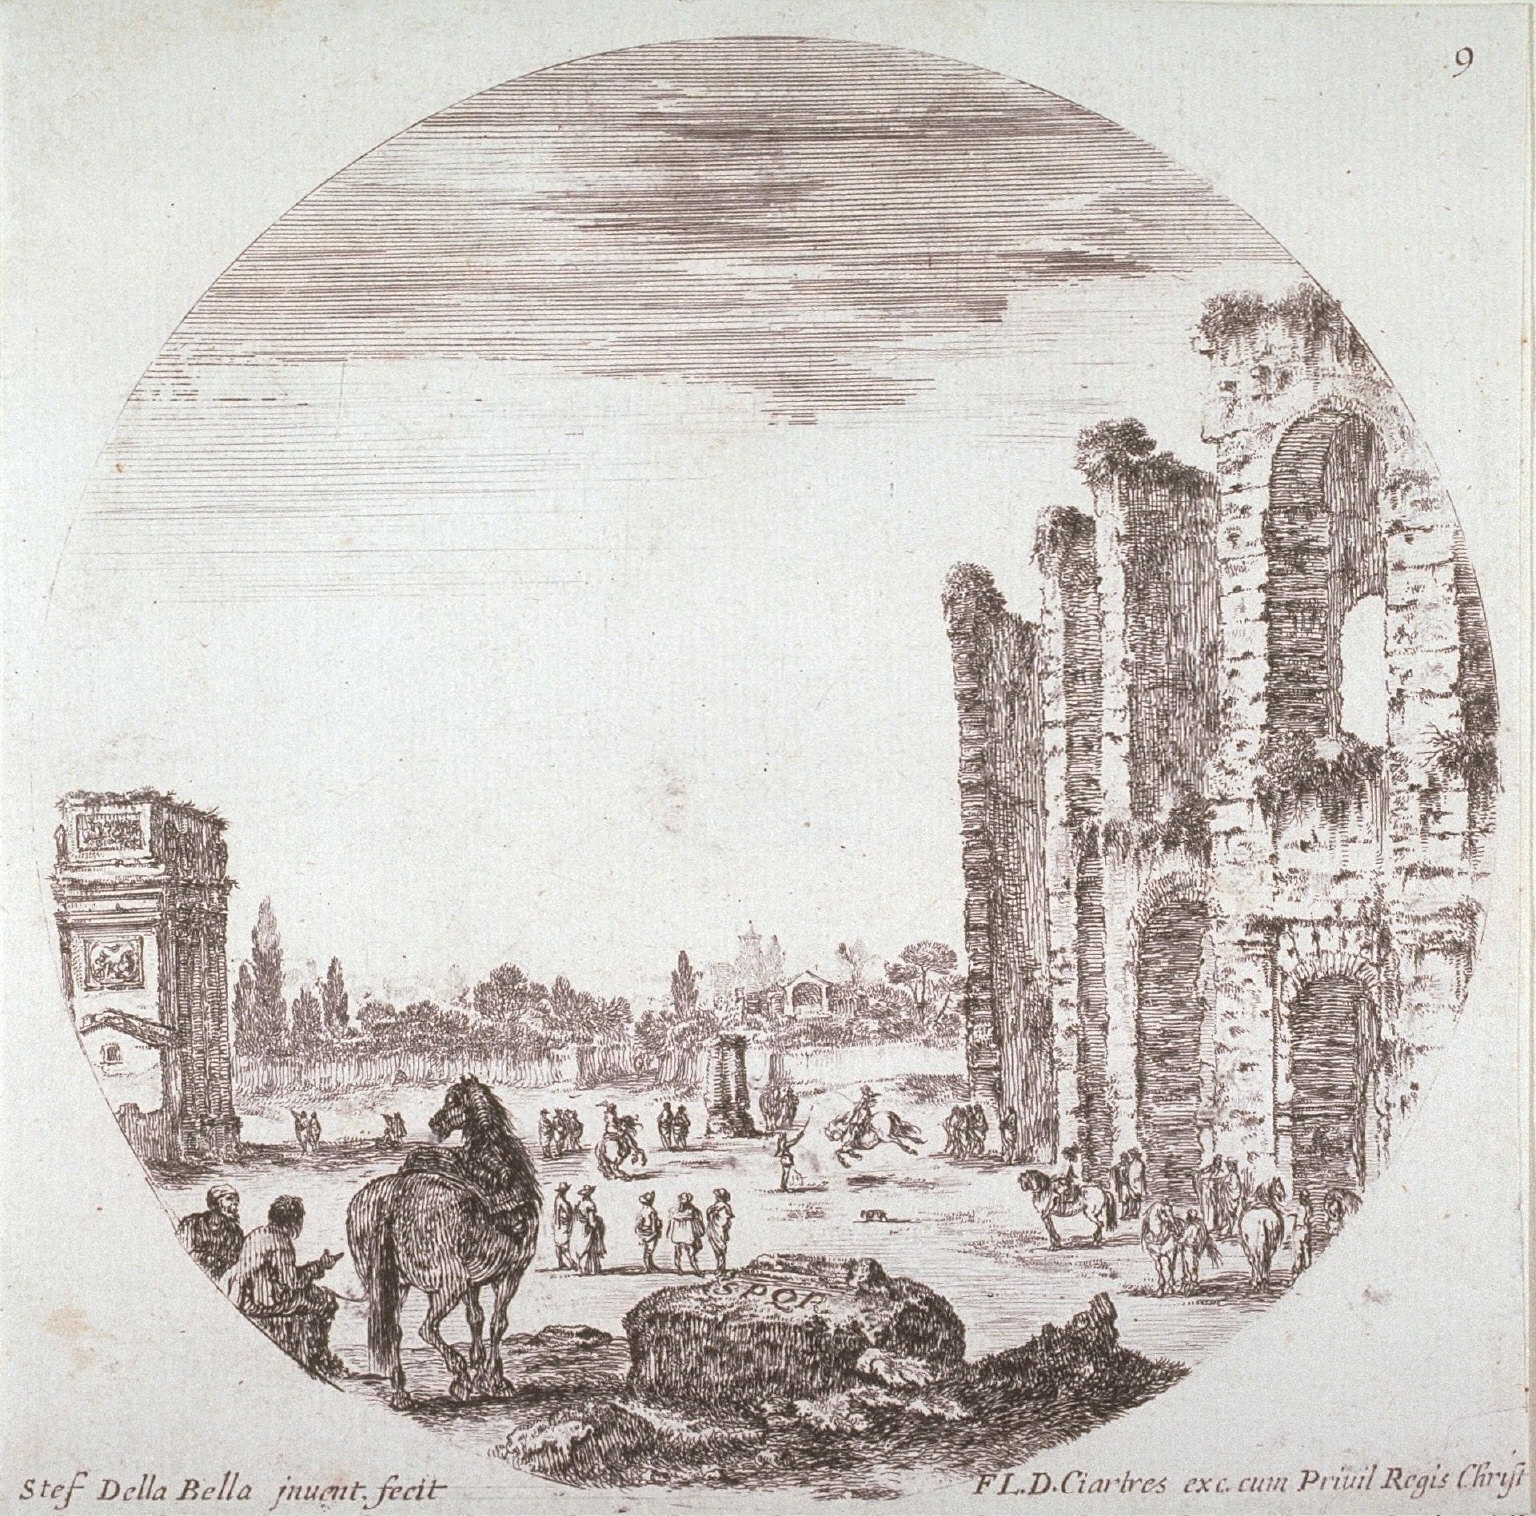 The Arch of Constantine and the Colosseum, from the series Landscapes and Ruins of Rome